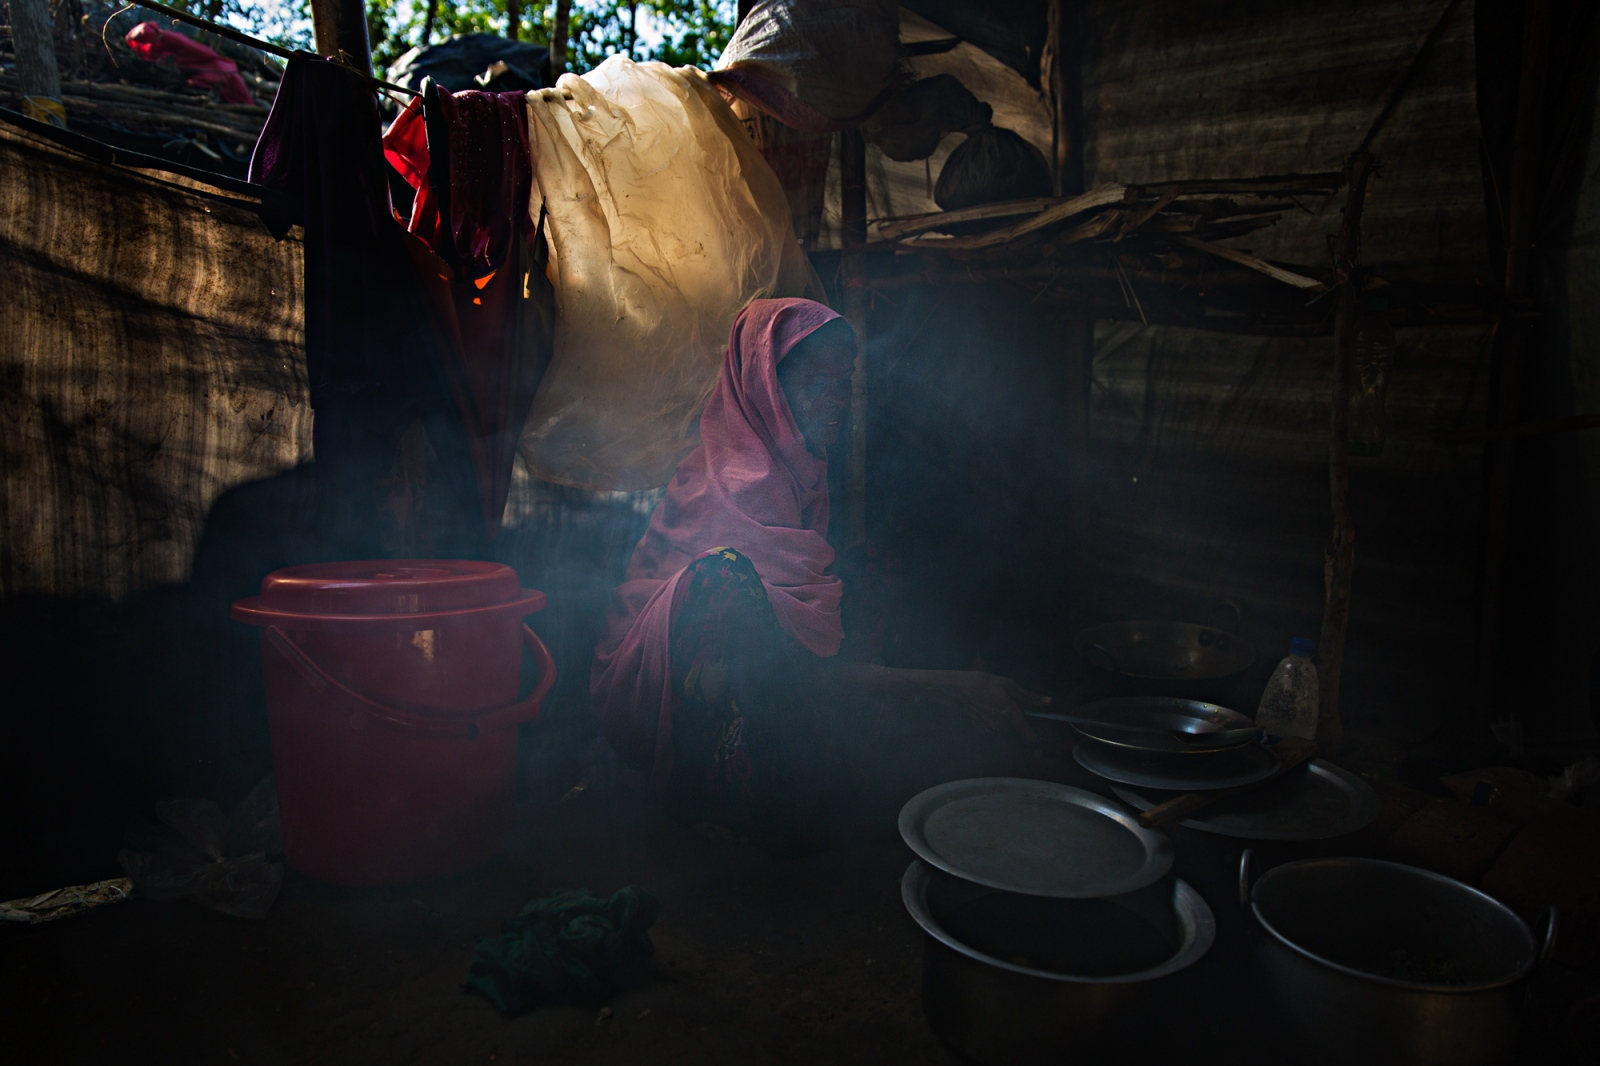 A Rohingya woman cooks food in her tent in Bagoha camp.